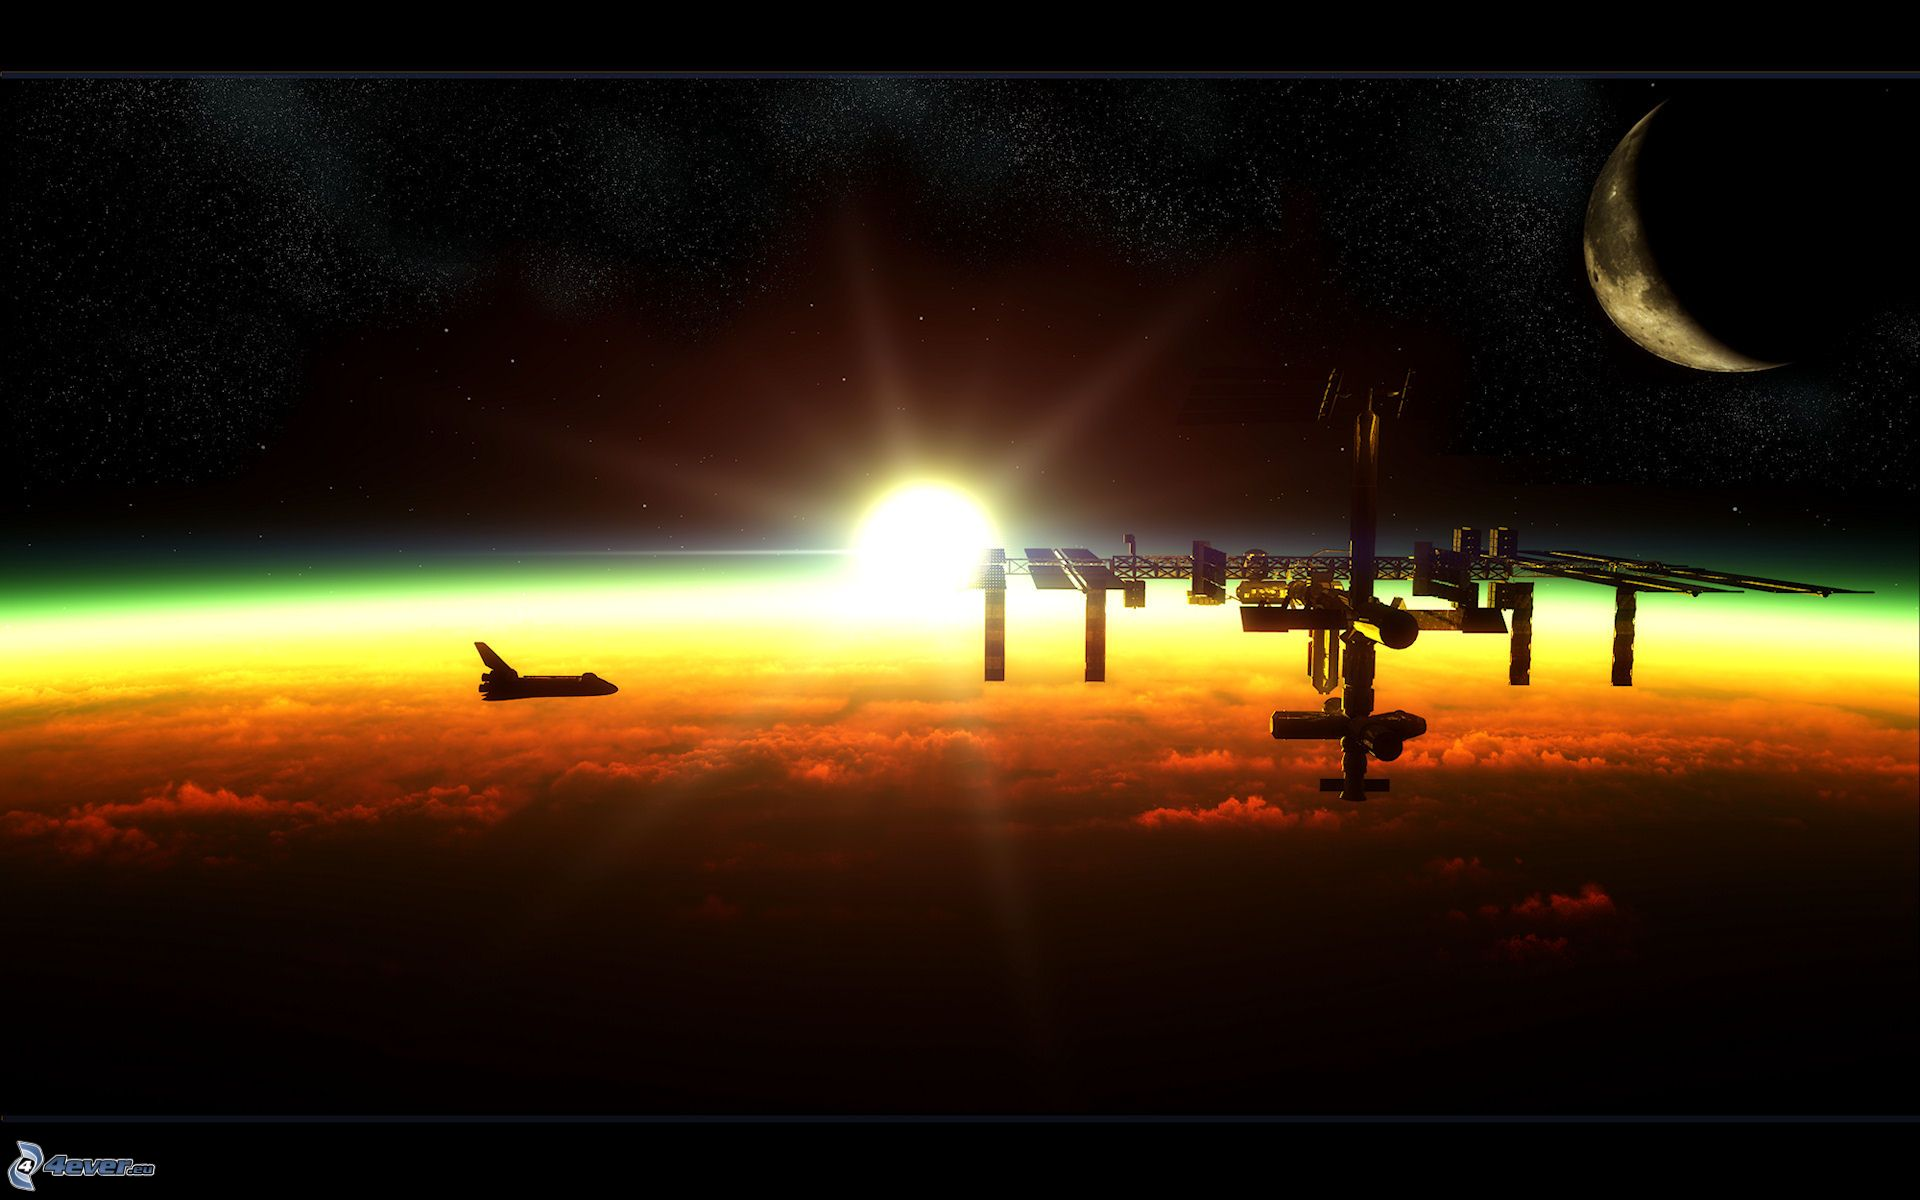 space station sunrise wallpaper - photo #9